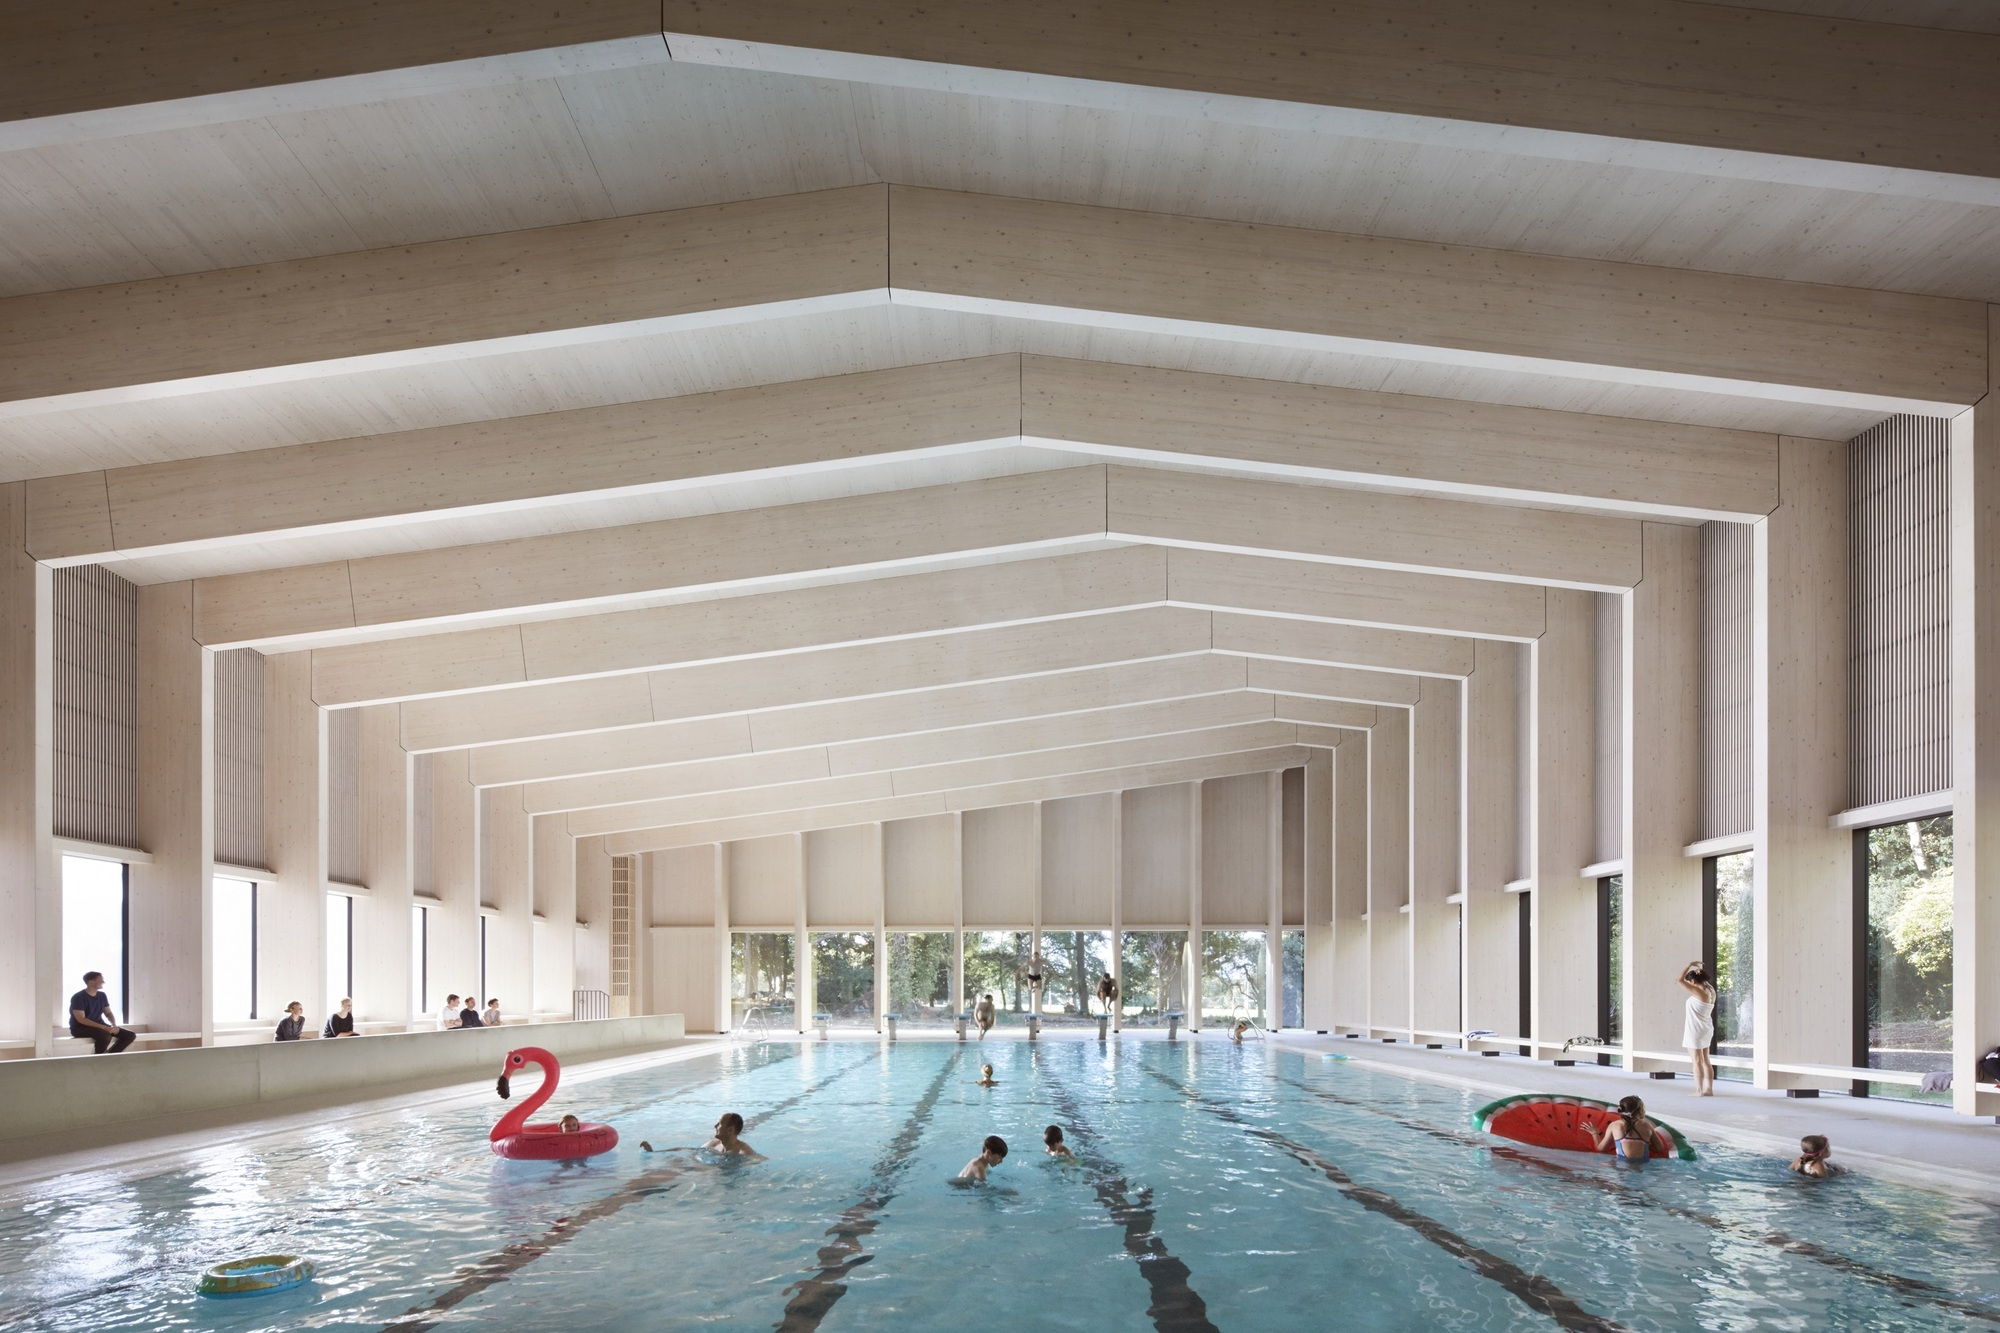 Freemen s school swimming pool hawkinsbrown archdaily for Pool design book